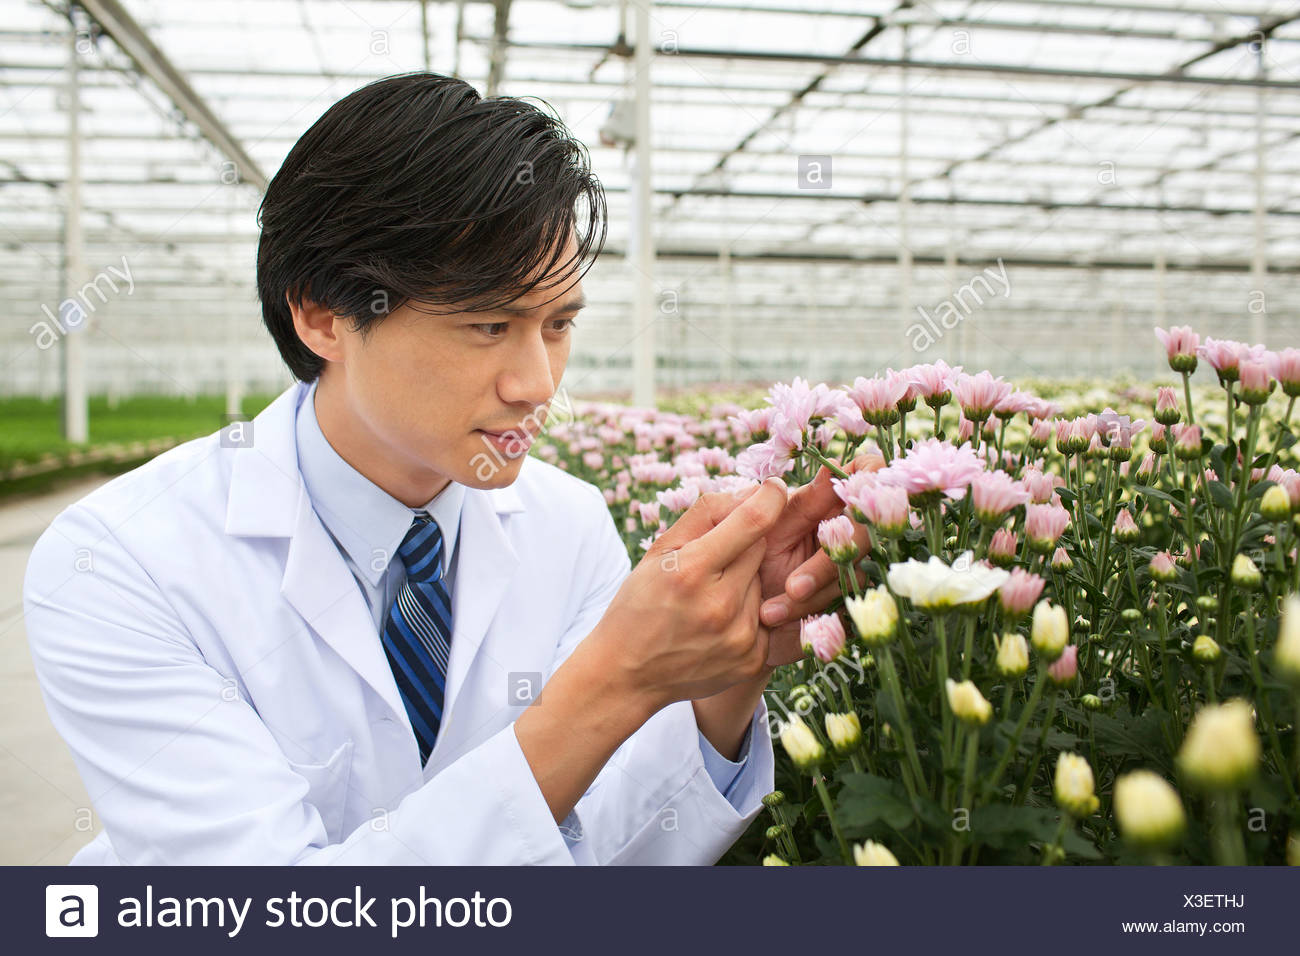 Man looking at plants growing in greenhouse - Stock Image